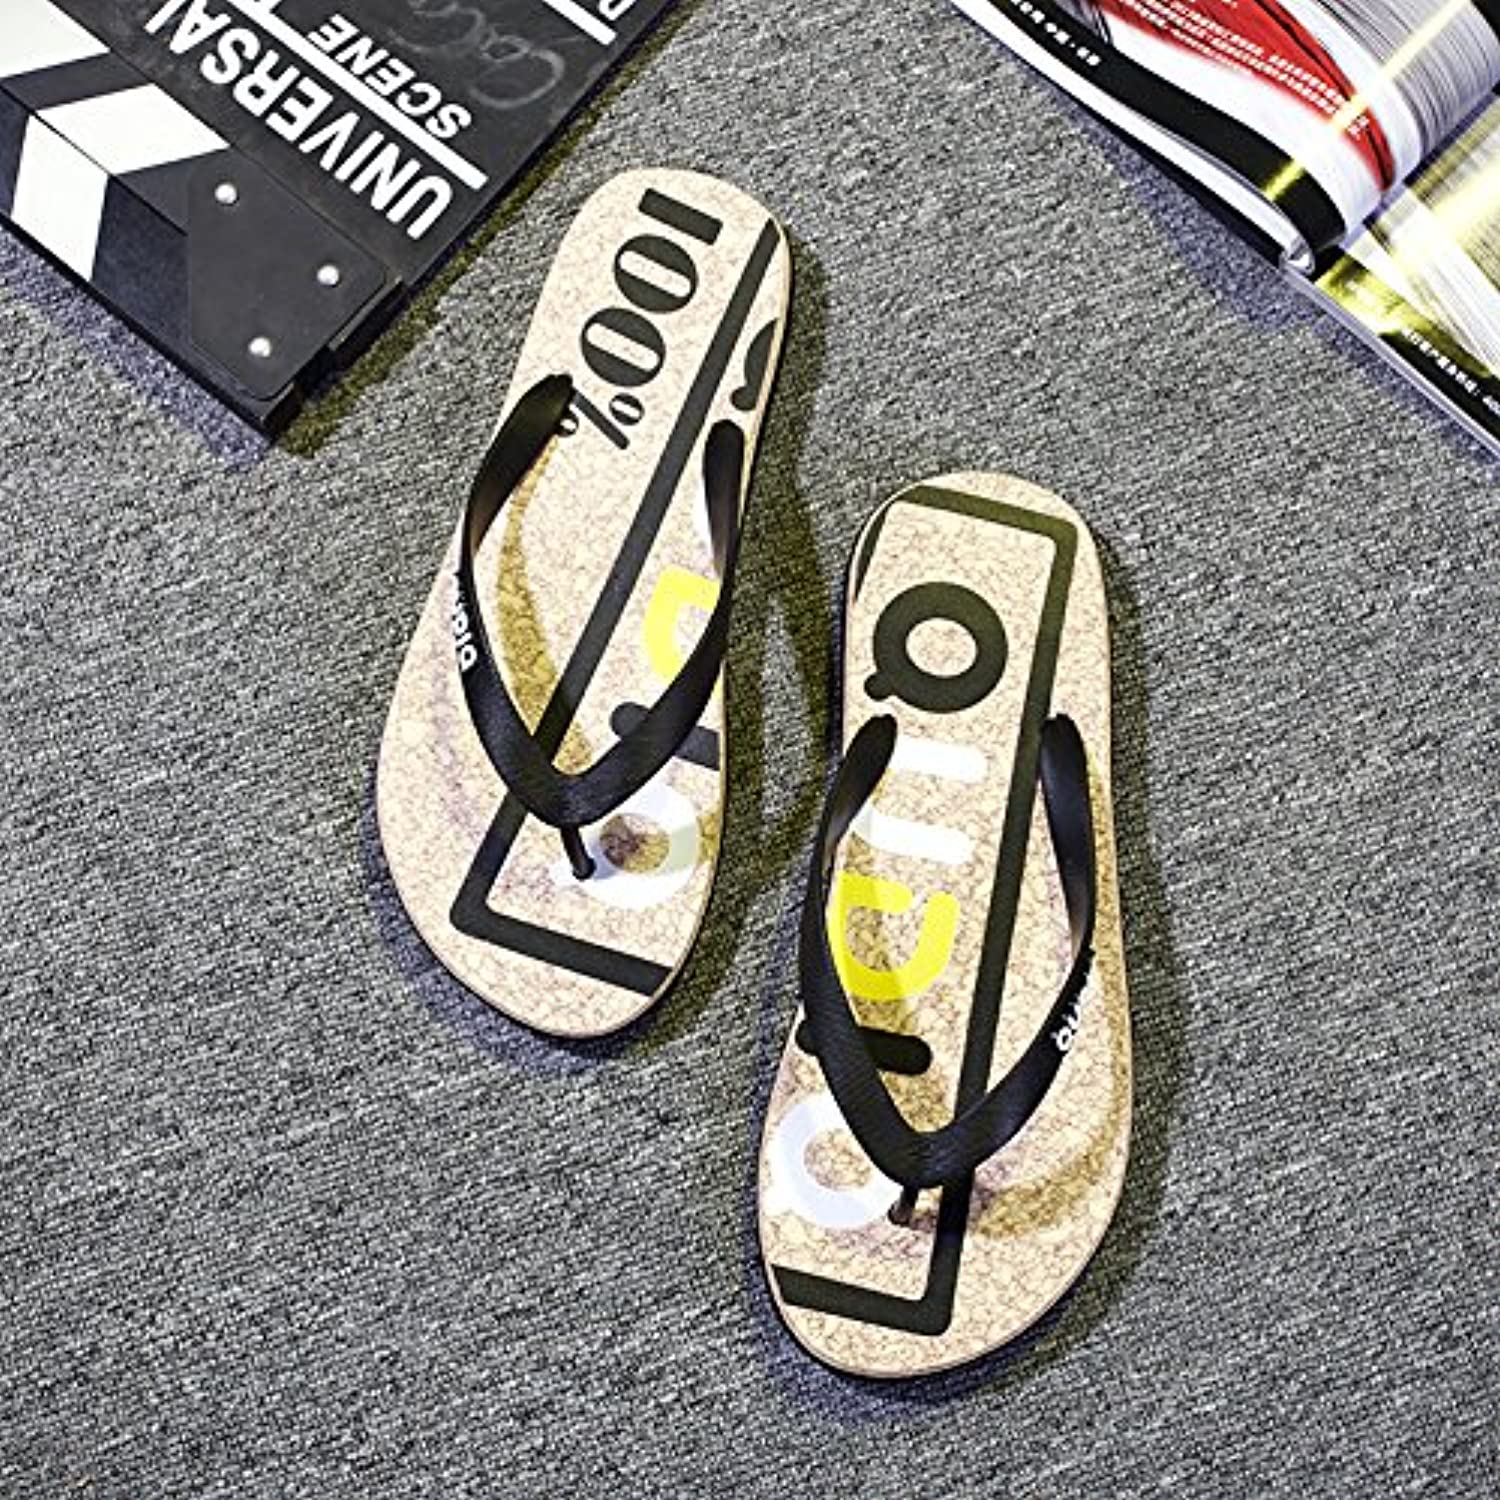 fankou The Trend That The Drag and Beach Male Summer Fashion Beach and Slippers Non-Slip Grip Foot Wear Students and - B07C88TT92 - 29d1f2